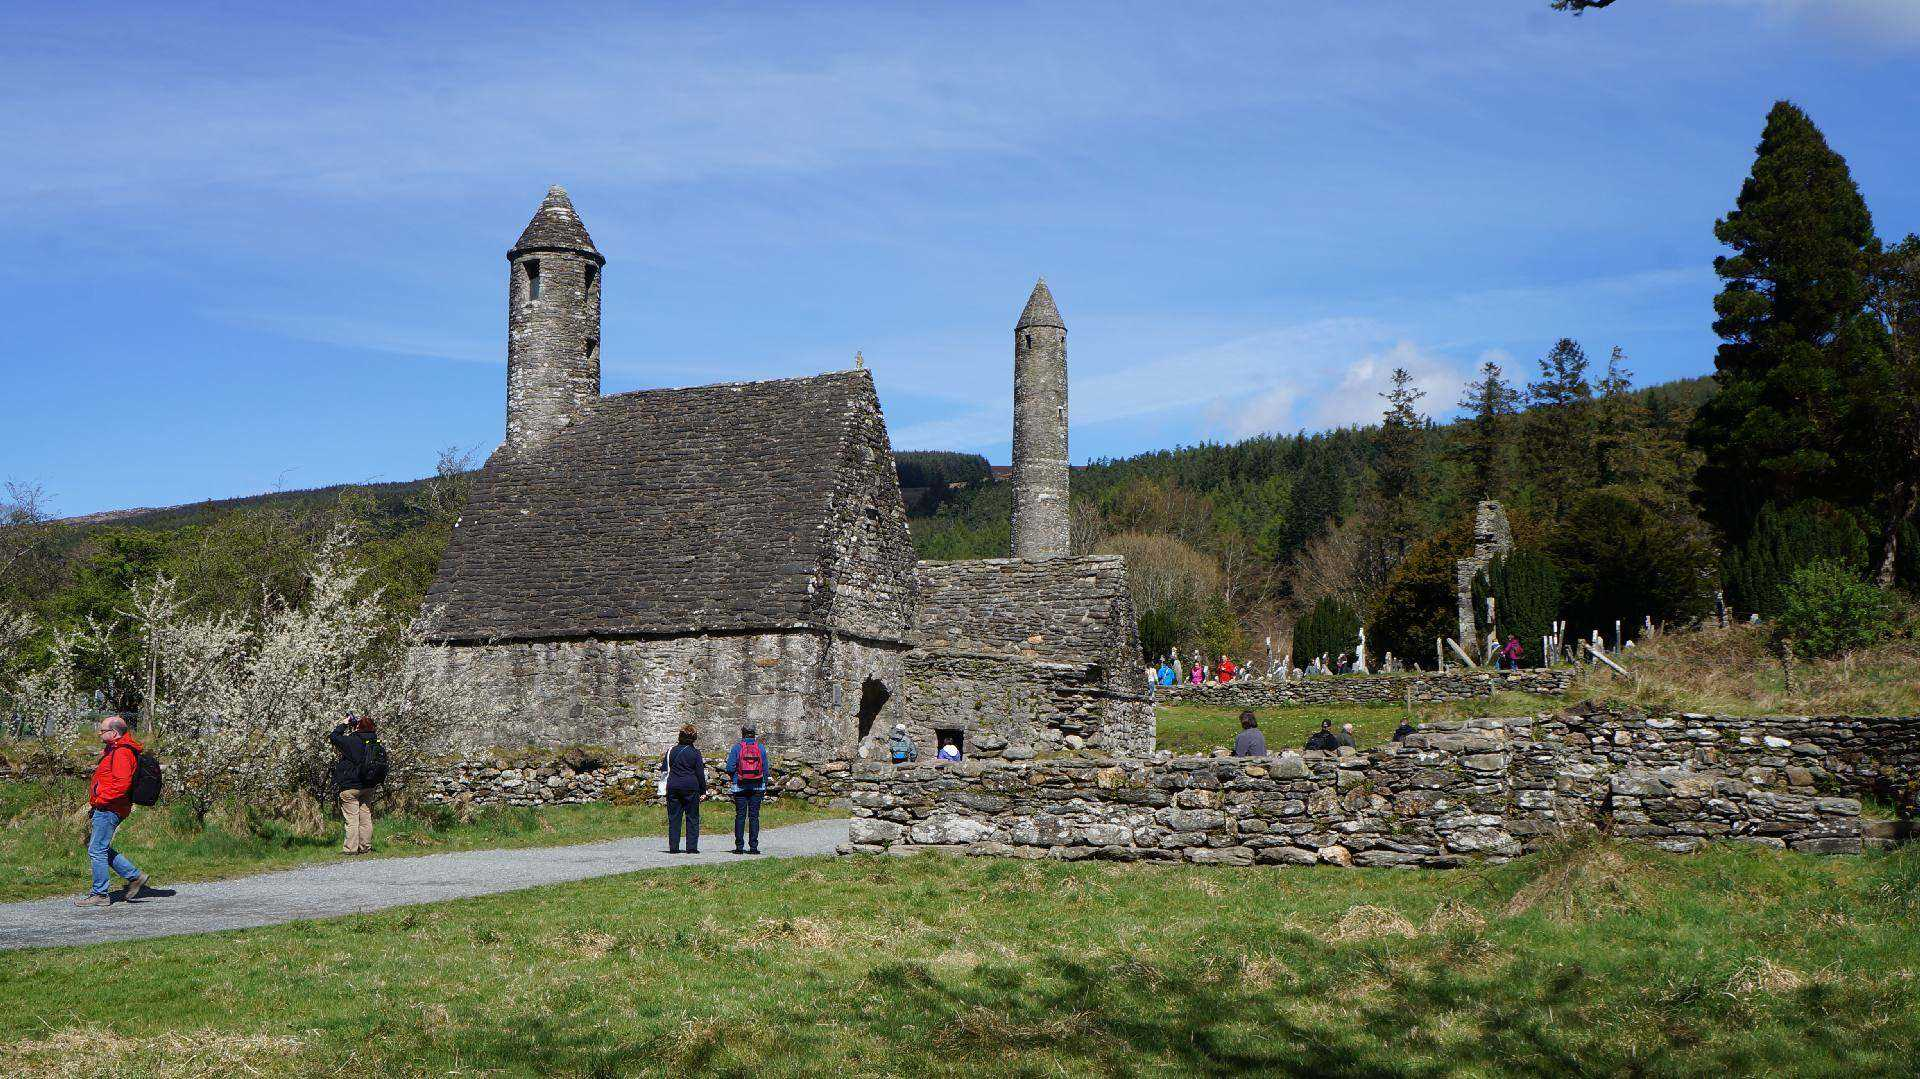 Walk The Wicklow Way As Ireland Commemorates The Easter Rising Centenary